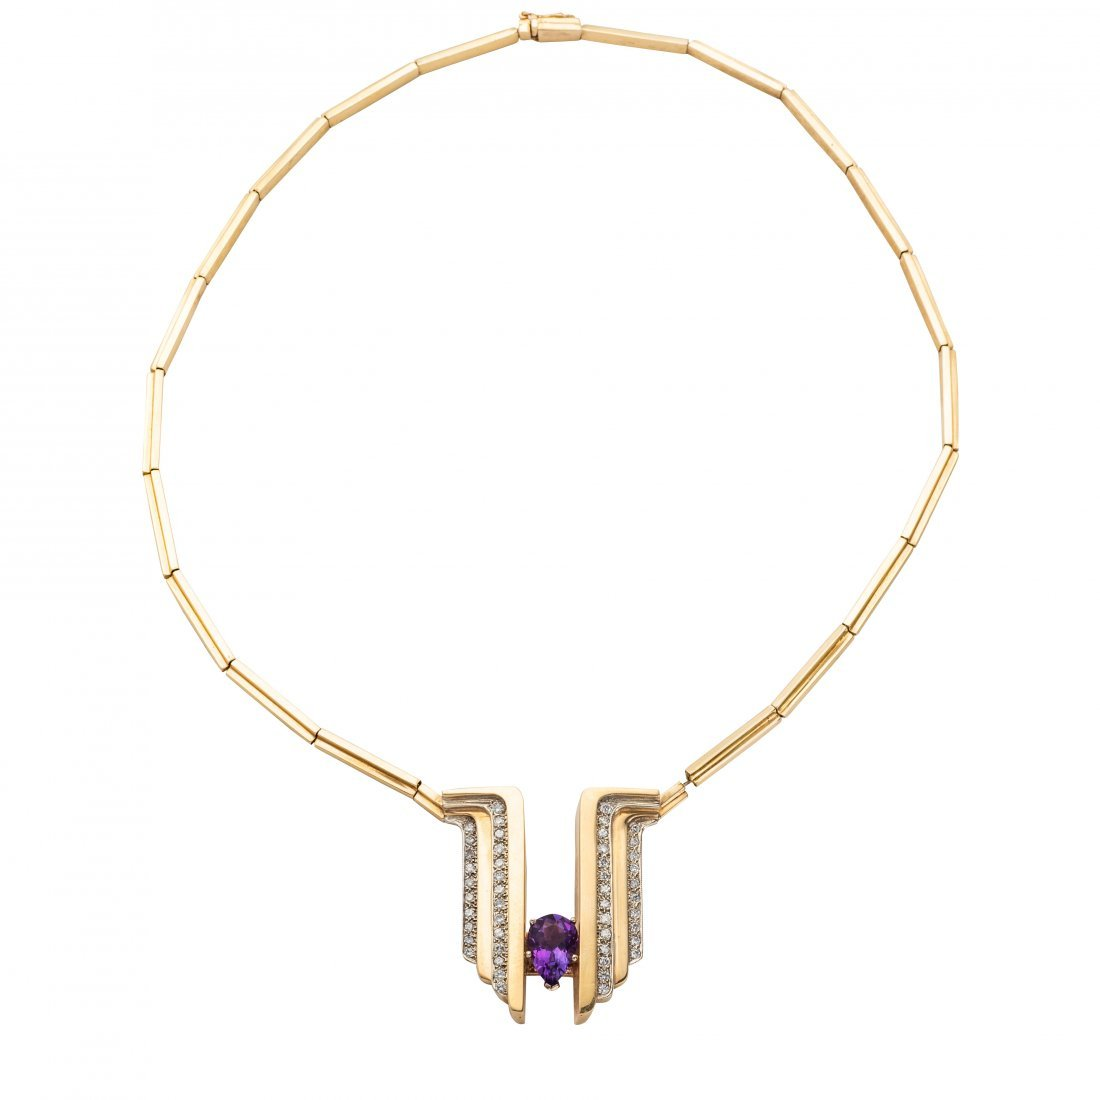 Vintage Gold, Diamond and Amethyst Necklace